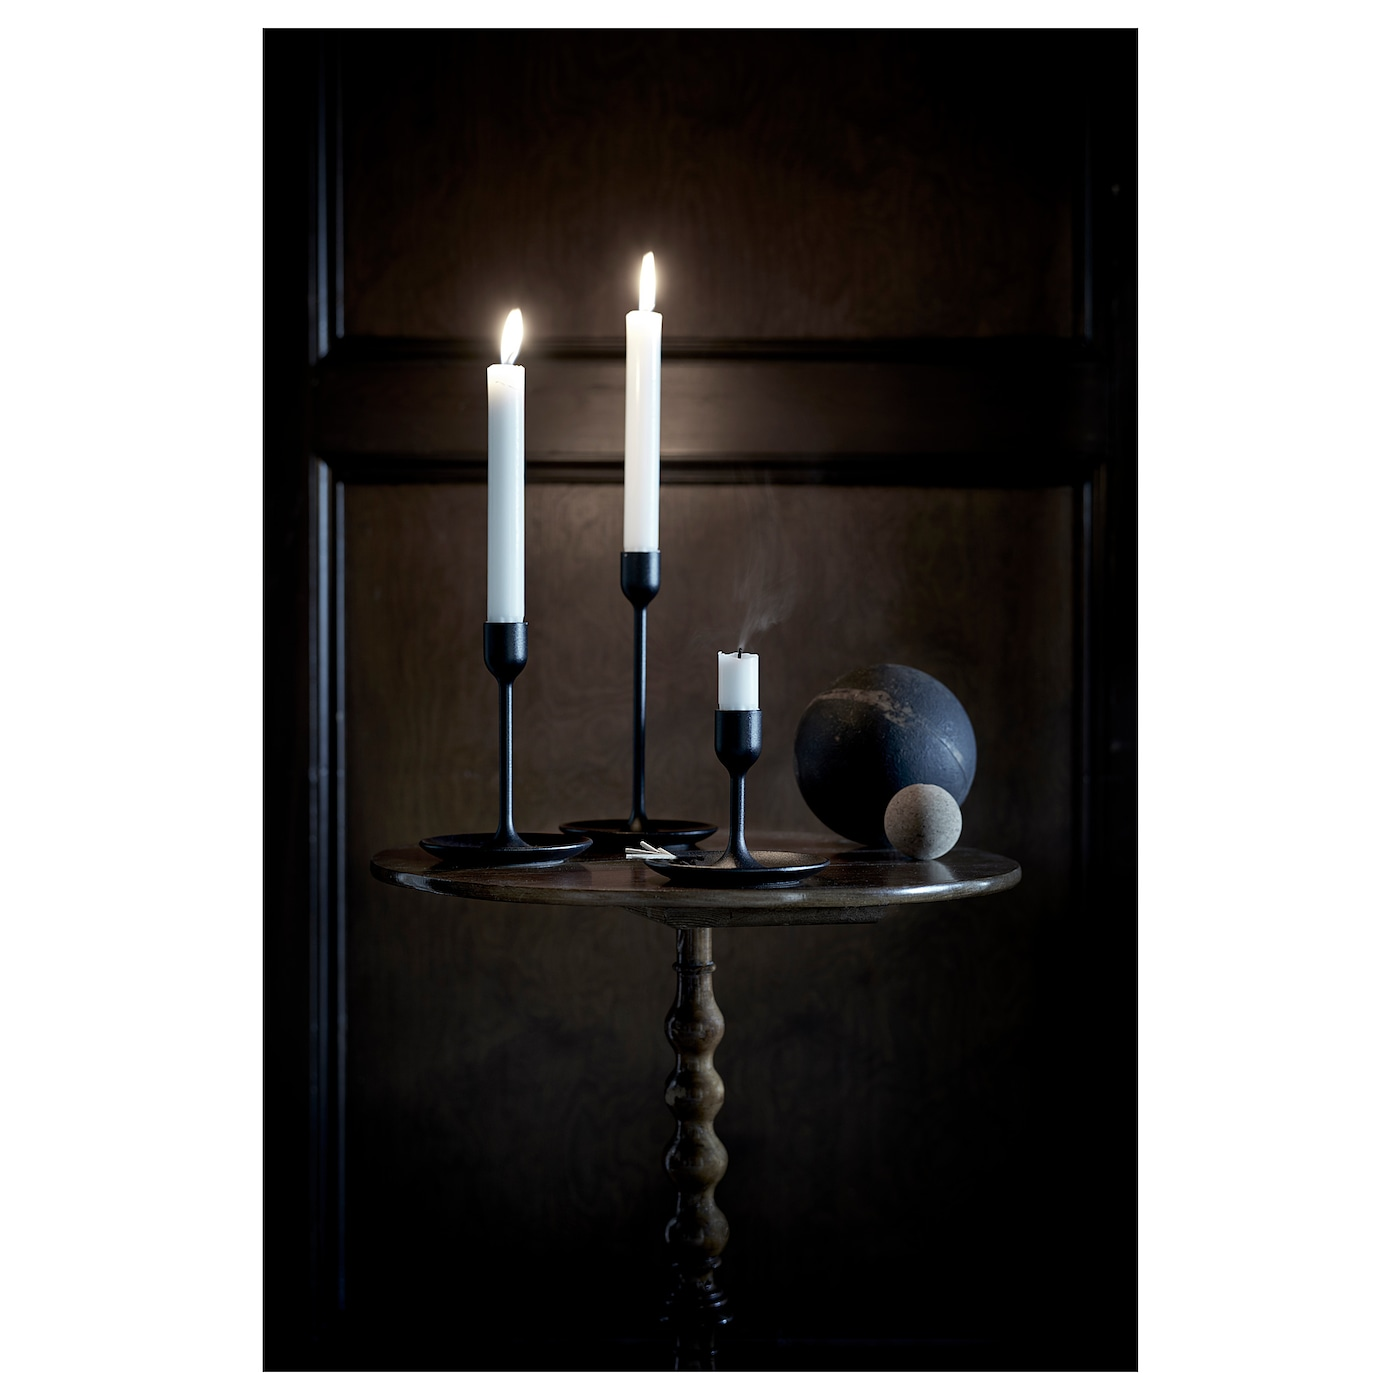 IKEA FULLTALIG candlestick, set of 3